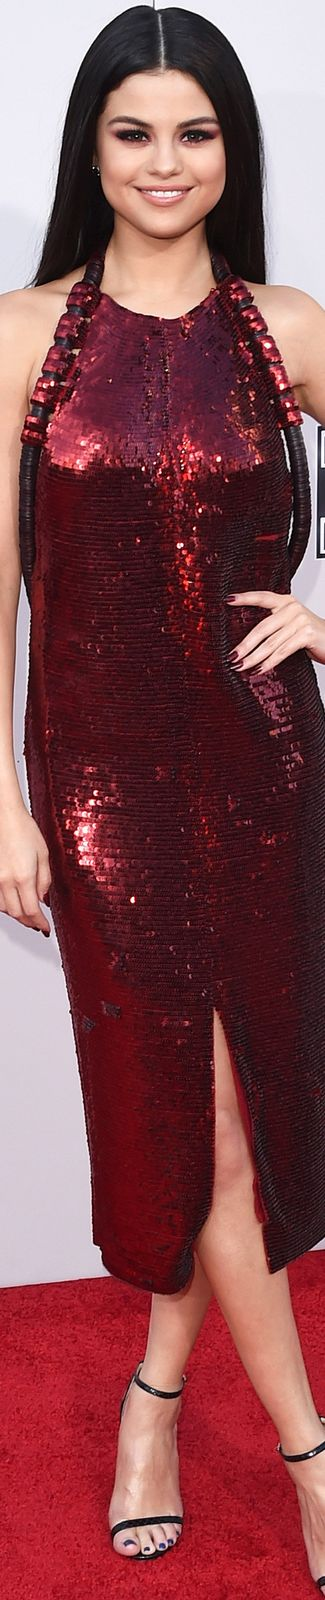 Selena Gomez wearing a red sequin Givenchy dress paired with Jimmy Choo shoes  2015 AMA's